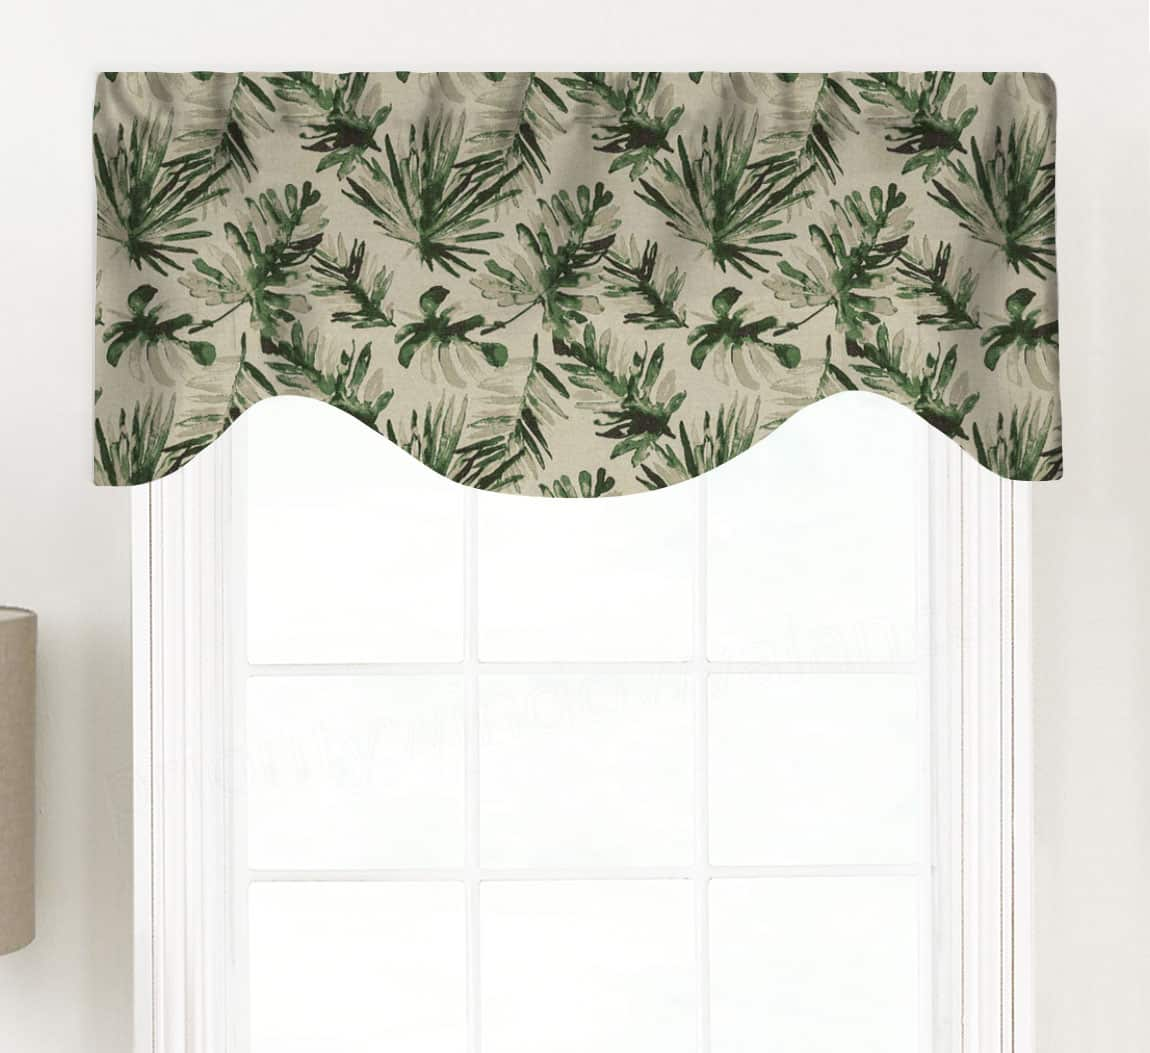 Frond Tropical Palm Fabric Shaped Valance Curtain